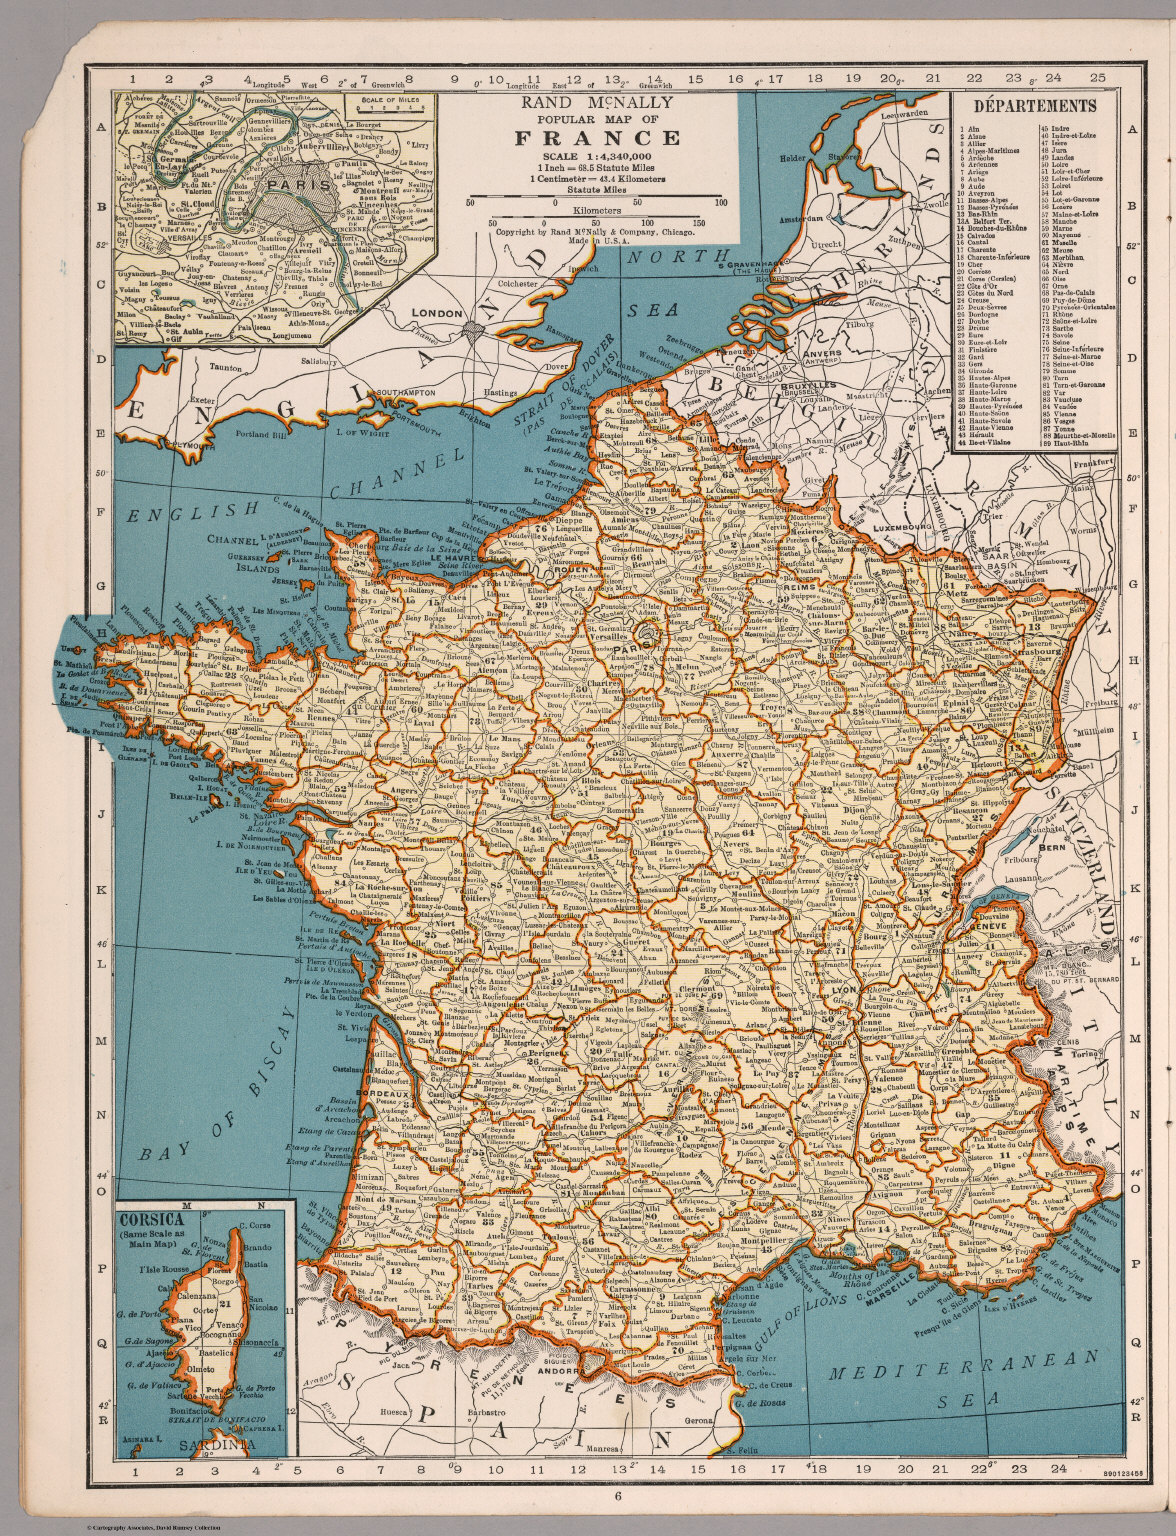 Rand mcnally popular map of france david rumsey historical map rand mcnally popular map of france gumiabroncs Images